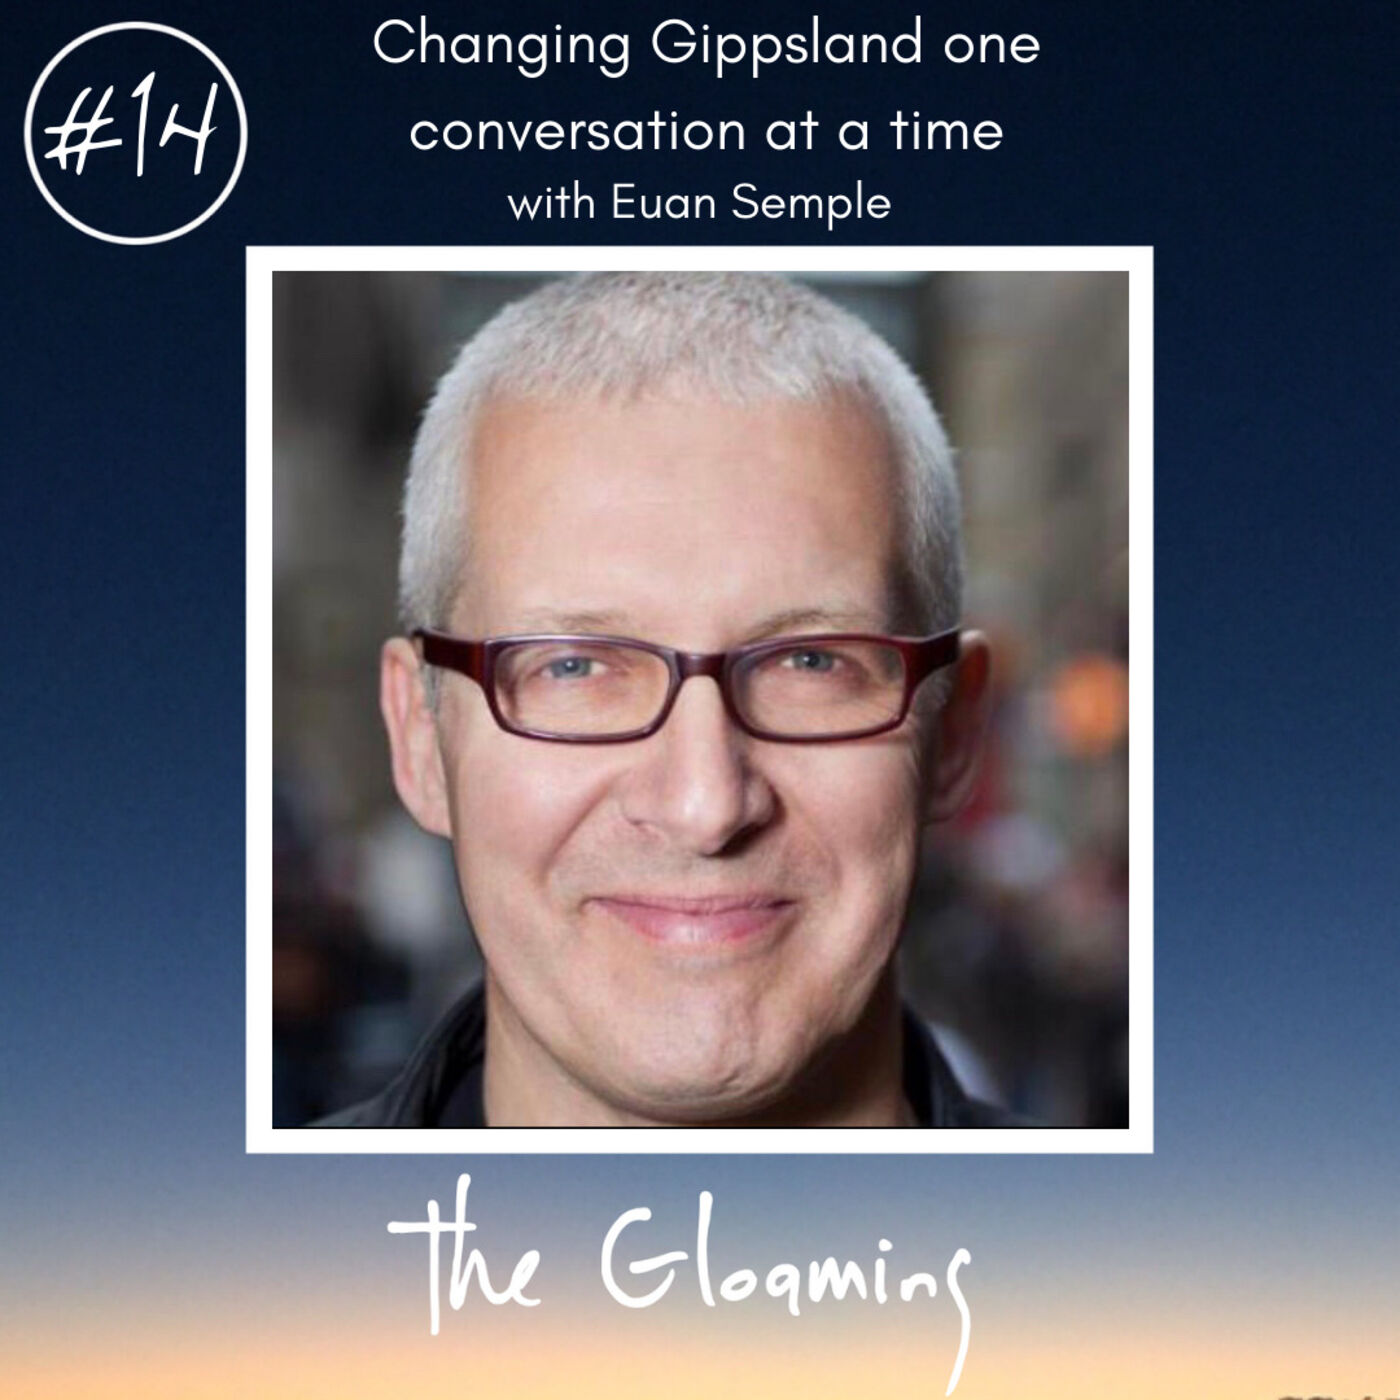 TG14: Changing Gippsland one conversation at a time (with Euan Semple)